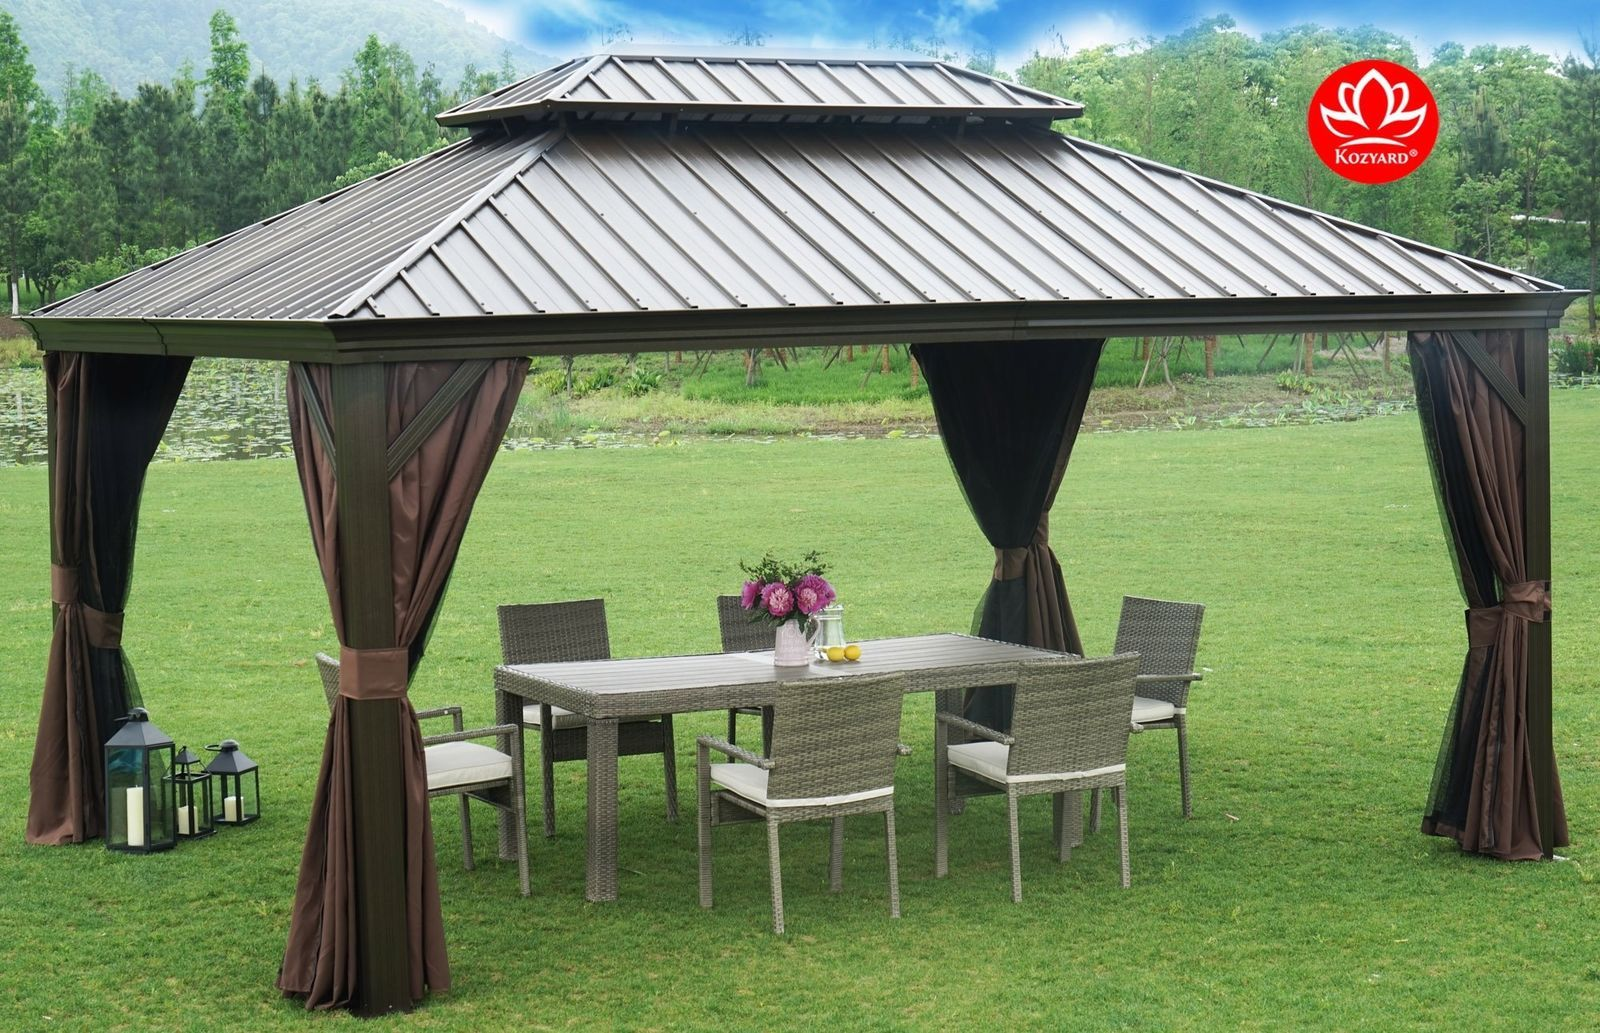 Permanent Gazebo Hardtop Aluminum Frame 12 X 16 Outdoor Patio